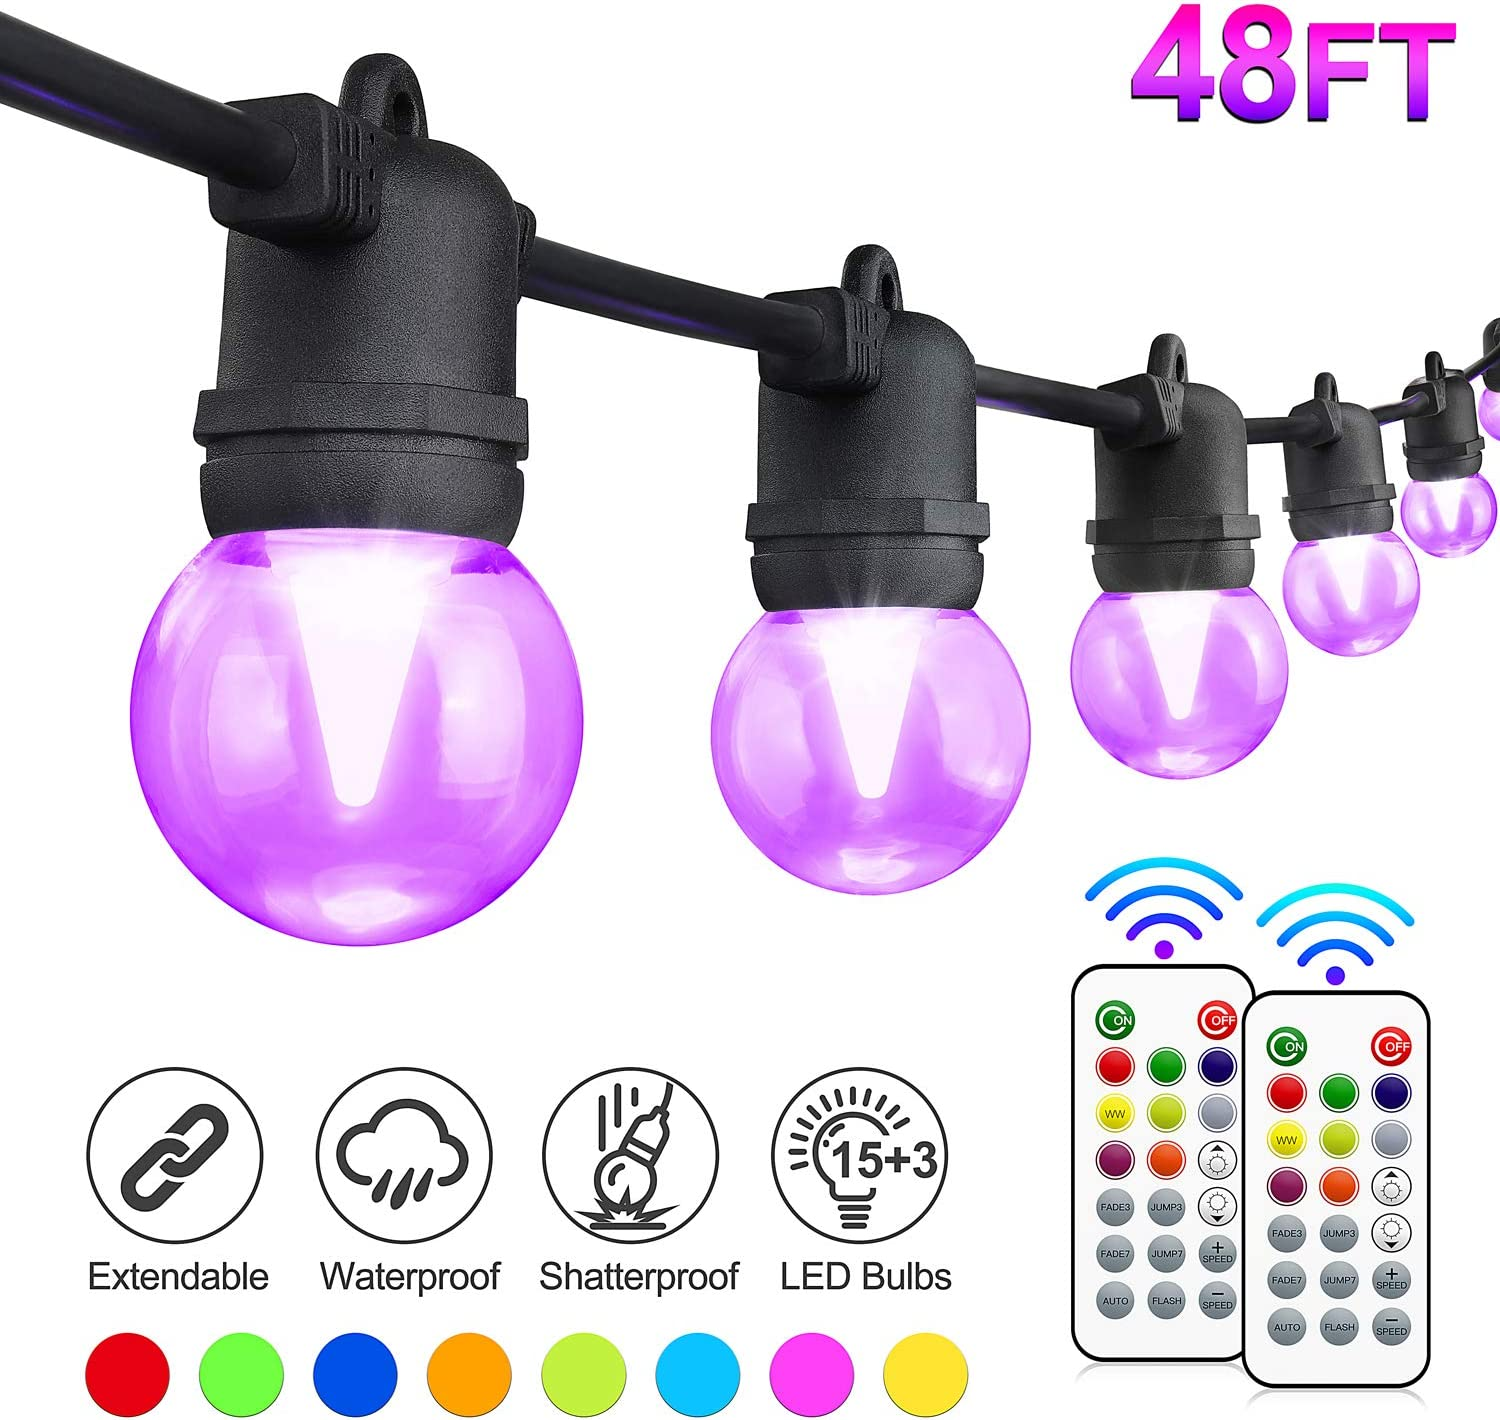 48FT Color Changing Outdoor String Light, RGB LED String Light, with 15+3 G45 Edison Bulbs Dimmable, 2 Remote Controls, Waterproof & Shatterproof for Patio, Cafe, Backyard and Garden